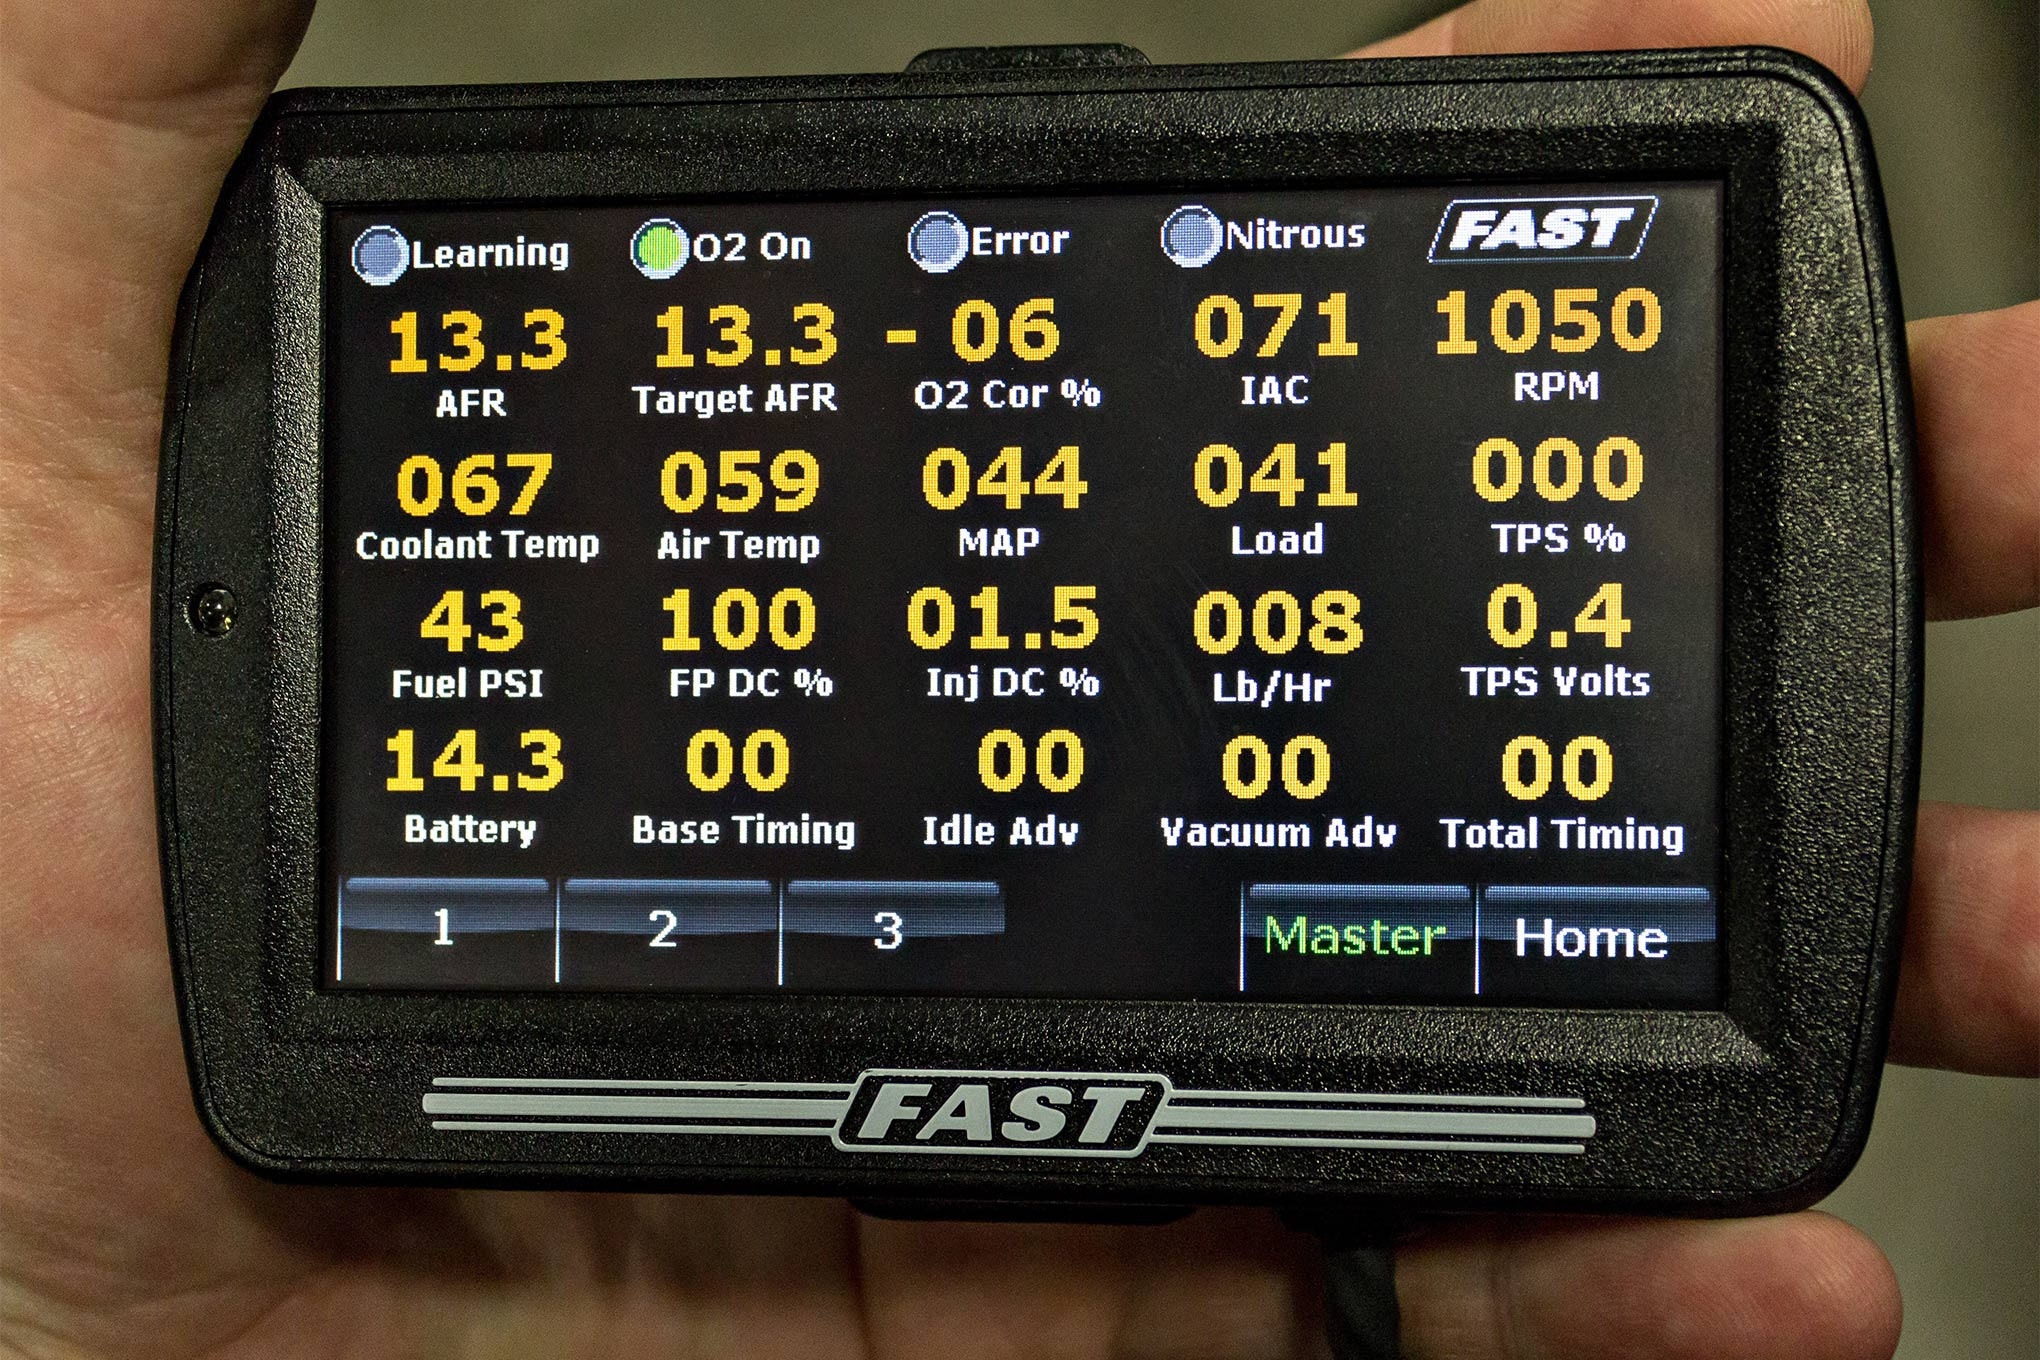 One option to monitoring your engine with the Sportsman 2.0 is to use the eDash Sensor Dash/Touchscreen Handheld Tuner in place of a laptop. You'll still need a laptop to set up the system, but then this screen can be stuck to your windshield so you can easily monitor your sensor output in real time. Watching the target A/F and actual A/F along with the O2 correction percentage and the current VE value will quickly allow you to monitor the accuracy of your overall tune.